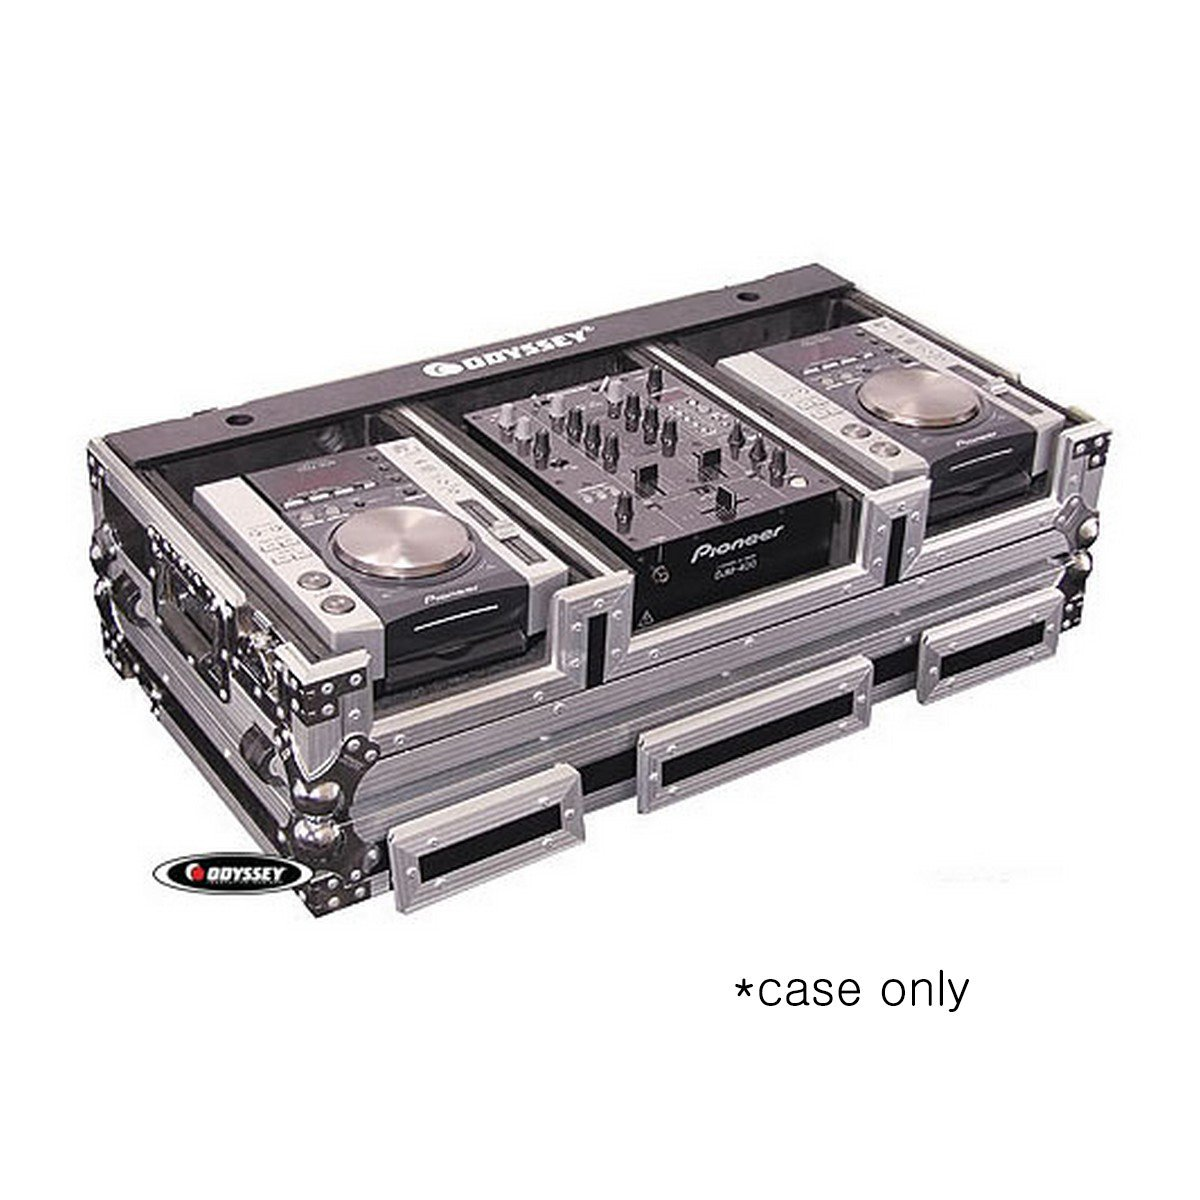 Cheap Dj Cd Players For Sale, find Dj Cd Players For Sale